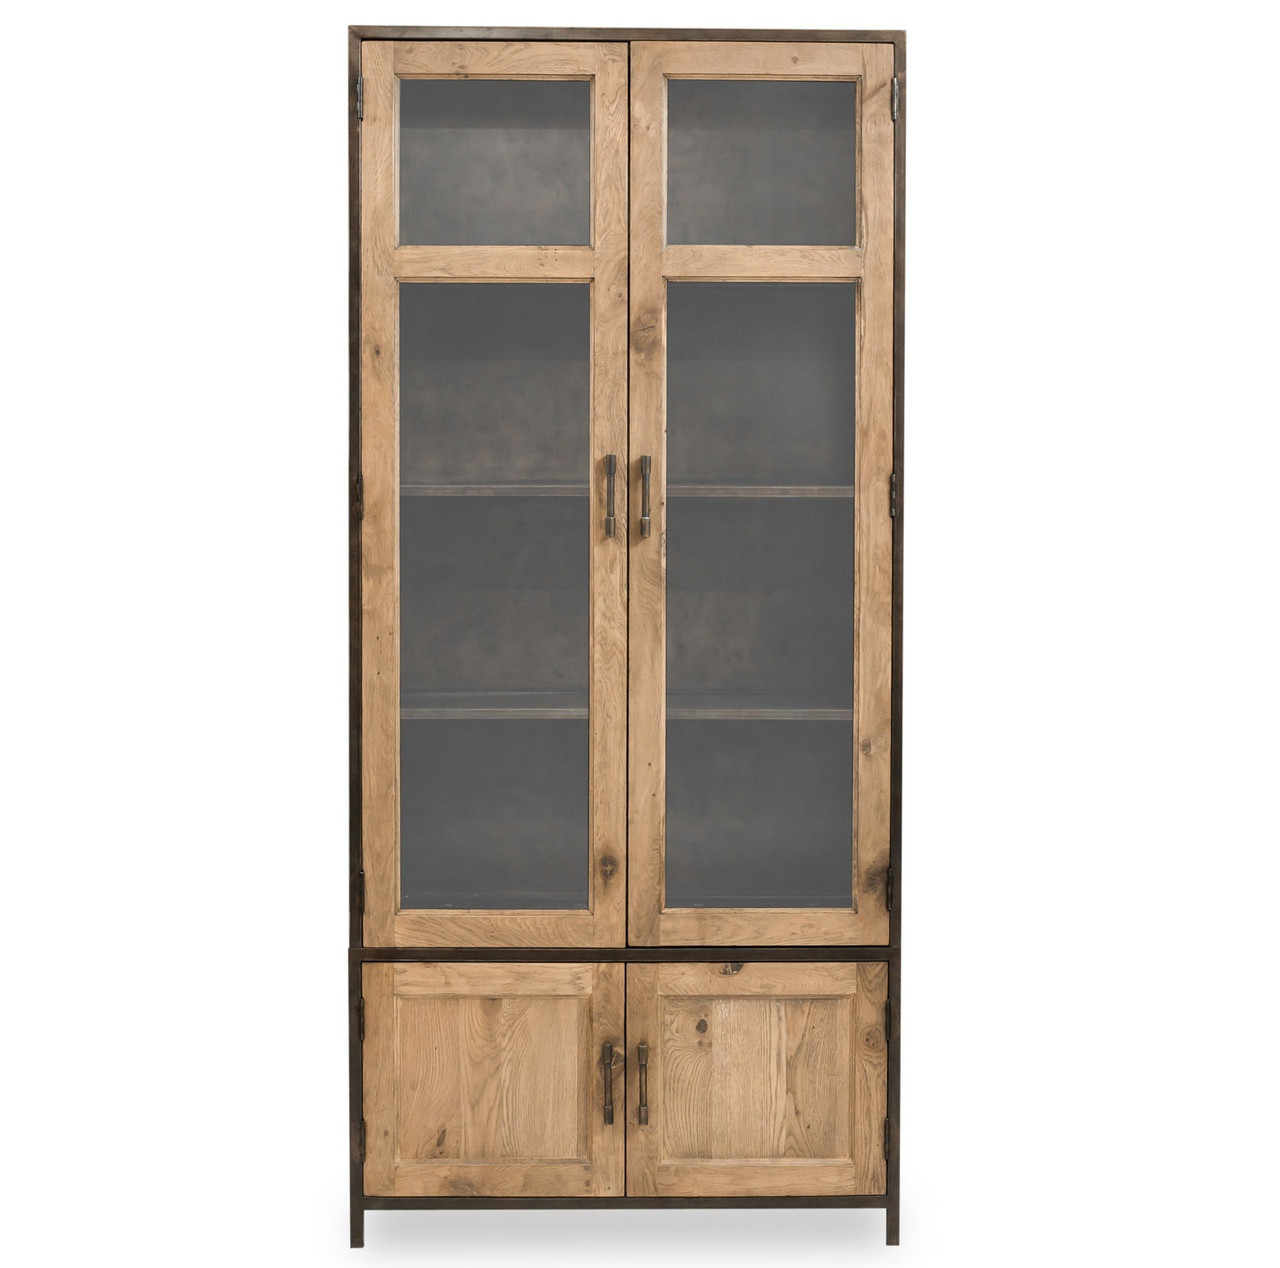 Dominic industrial metal oak tall cabinet with glass doors